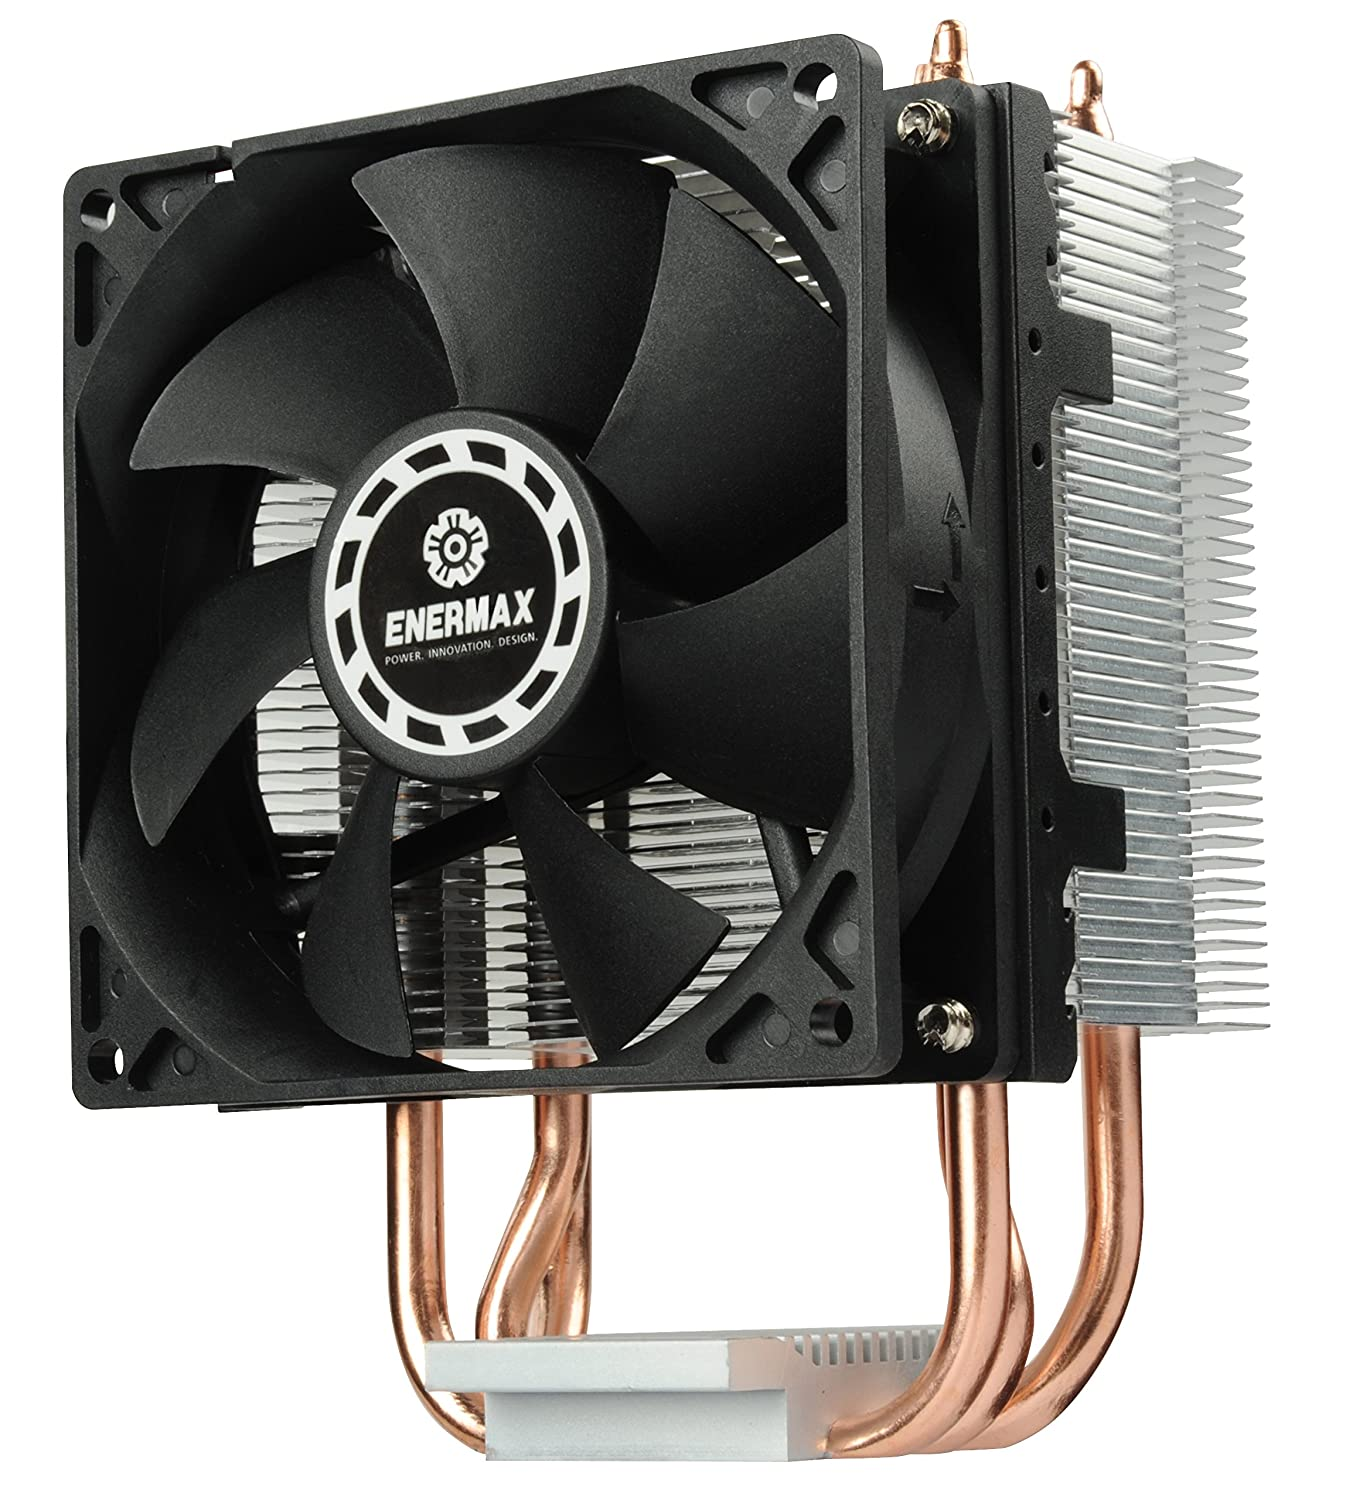 Enermax Ets N30 Ll Compact Intel Amd Cpu Cooler With Deepcool Gammaxx 200t Processor Direct Heat Pipes N30r He Computers Accessories